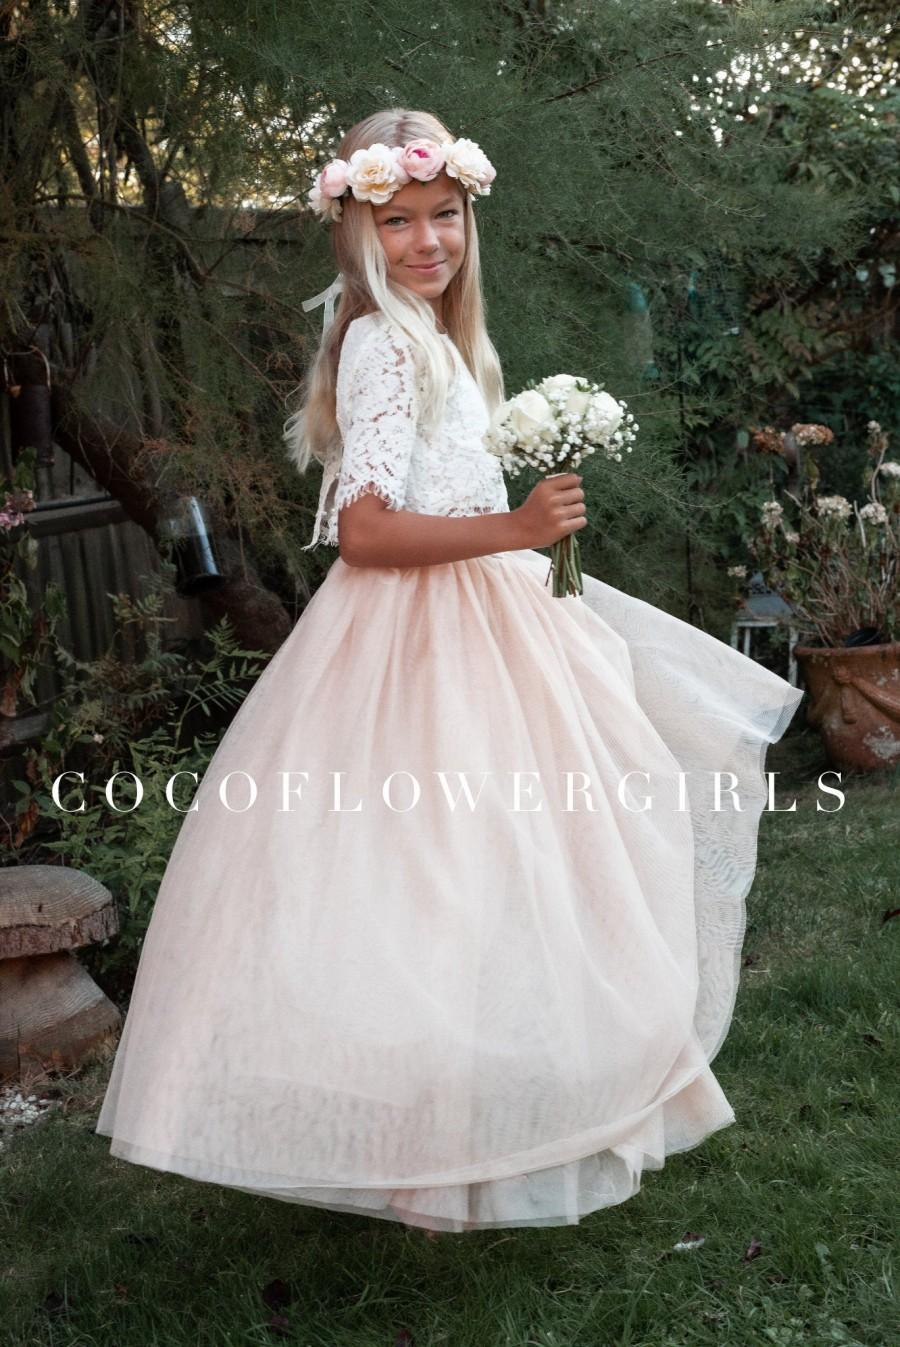 Hochzeit - Beautiful Boho Style Bridal Flower Girl Dress Lace Crop Top and Long Layered Princess Tulle Skirt - Apricot Champagne